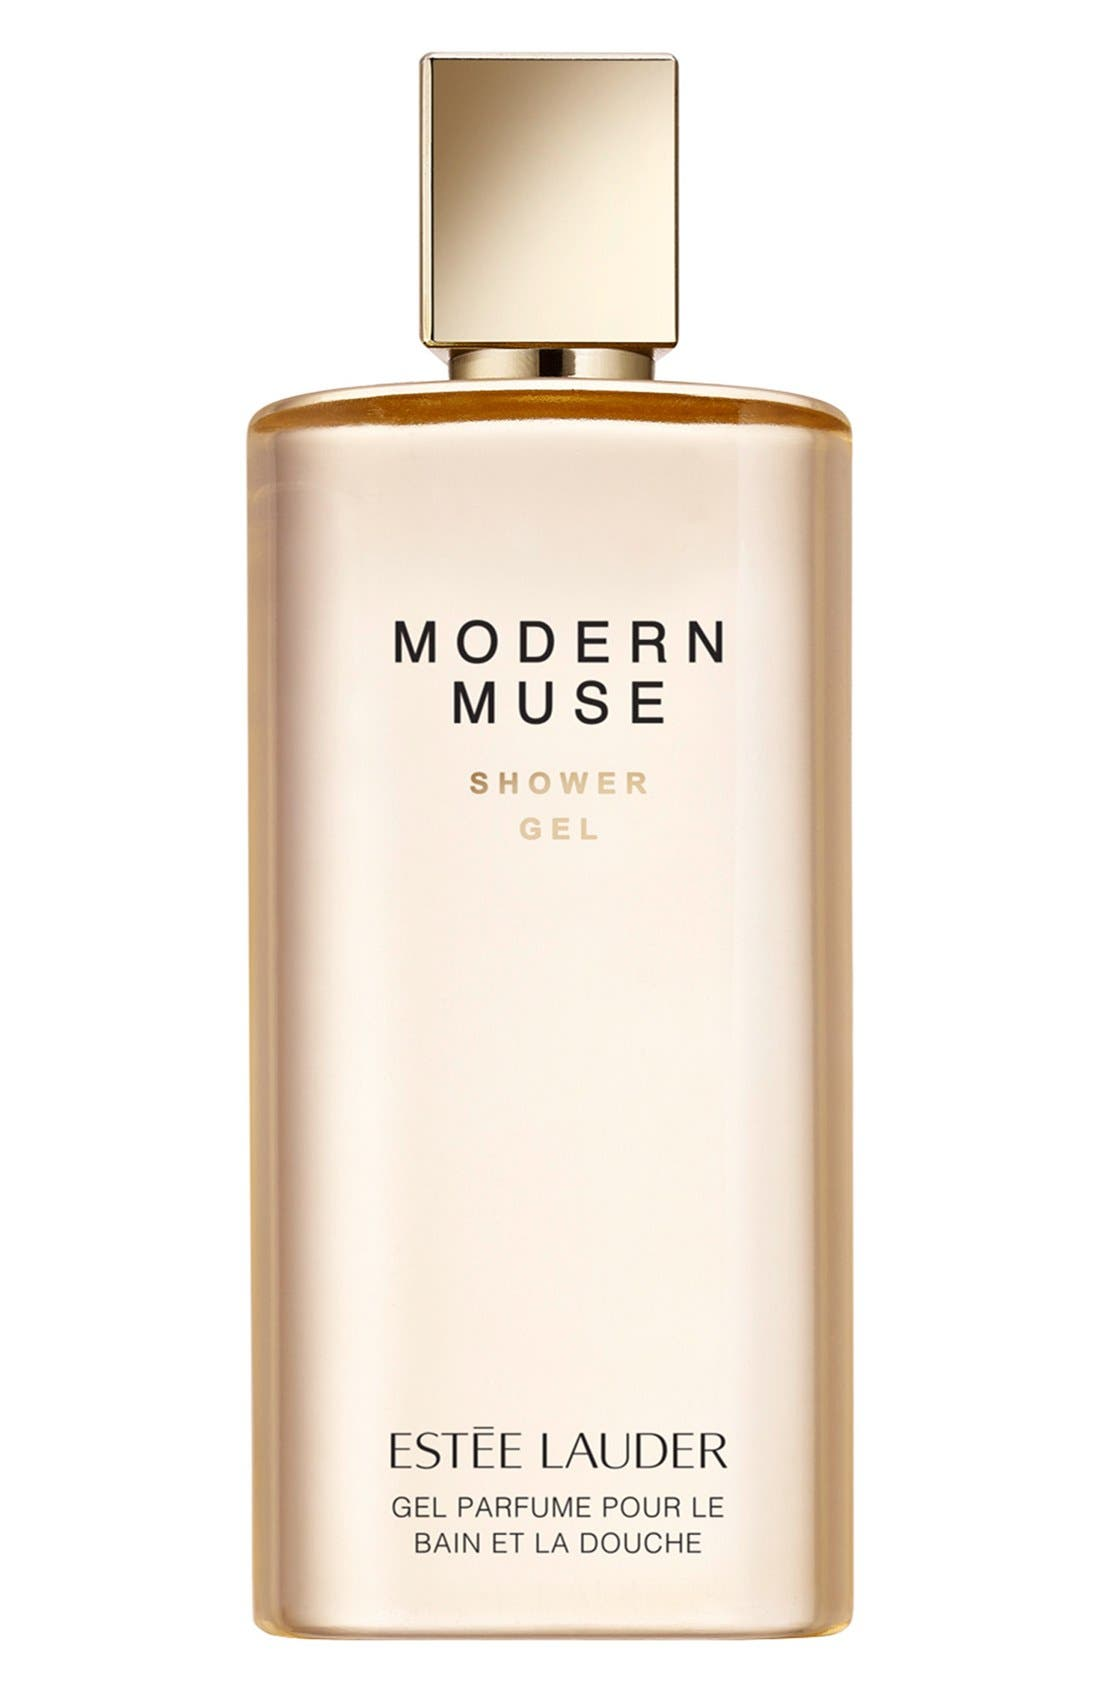 Modern Muse Shower Gel,                             Main thumbnail 1, color,                             000